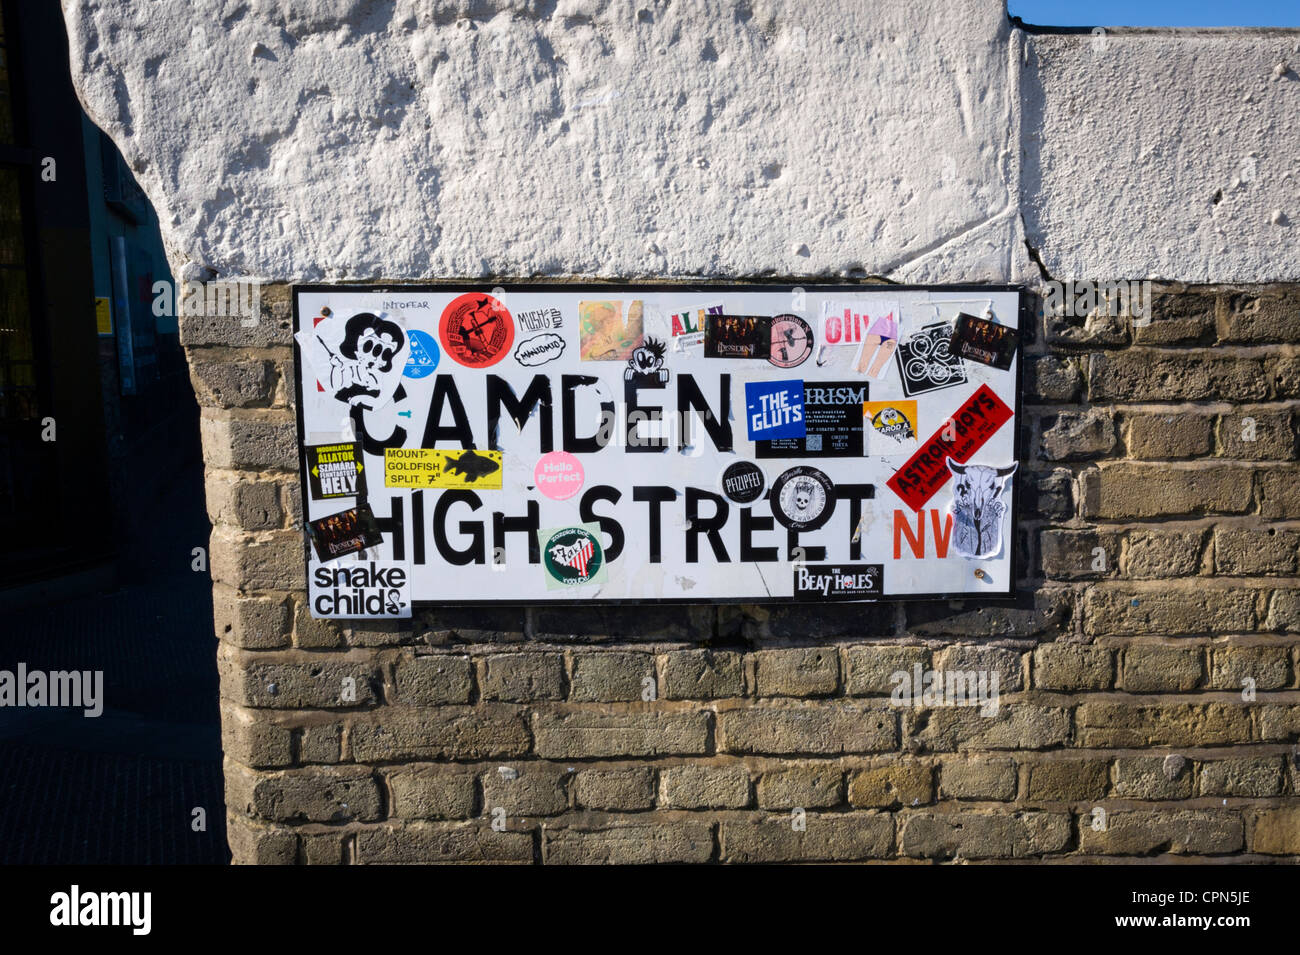 London Camden Town Lock Market Stables Camden High Street street road sign stickers advertising businesses events - Stock Image